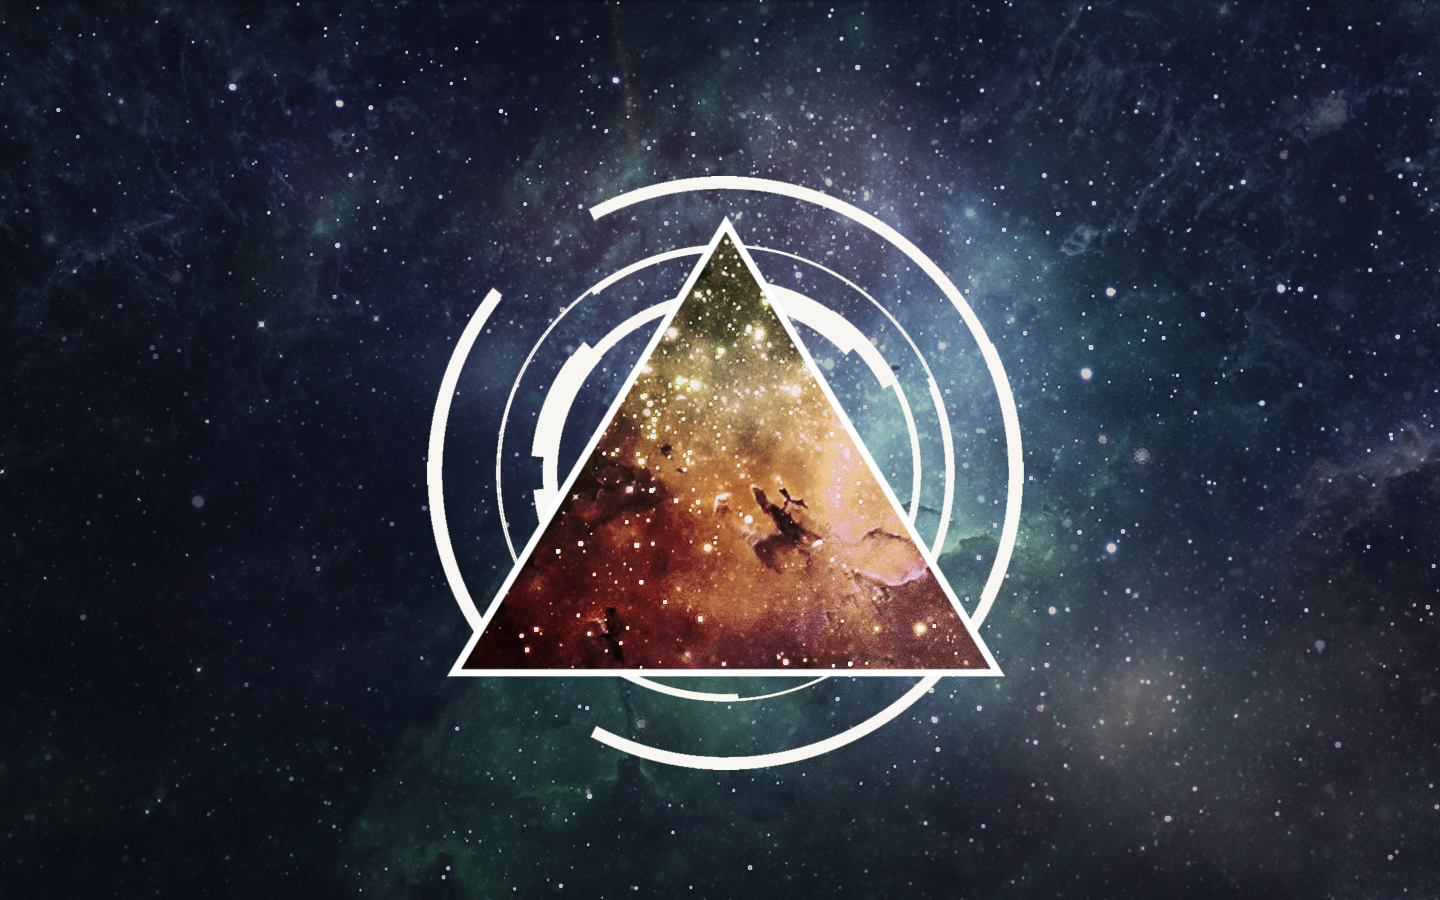 Nebula Triangle Wallpaper by Devler on DeviantArt